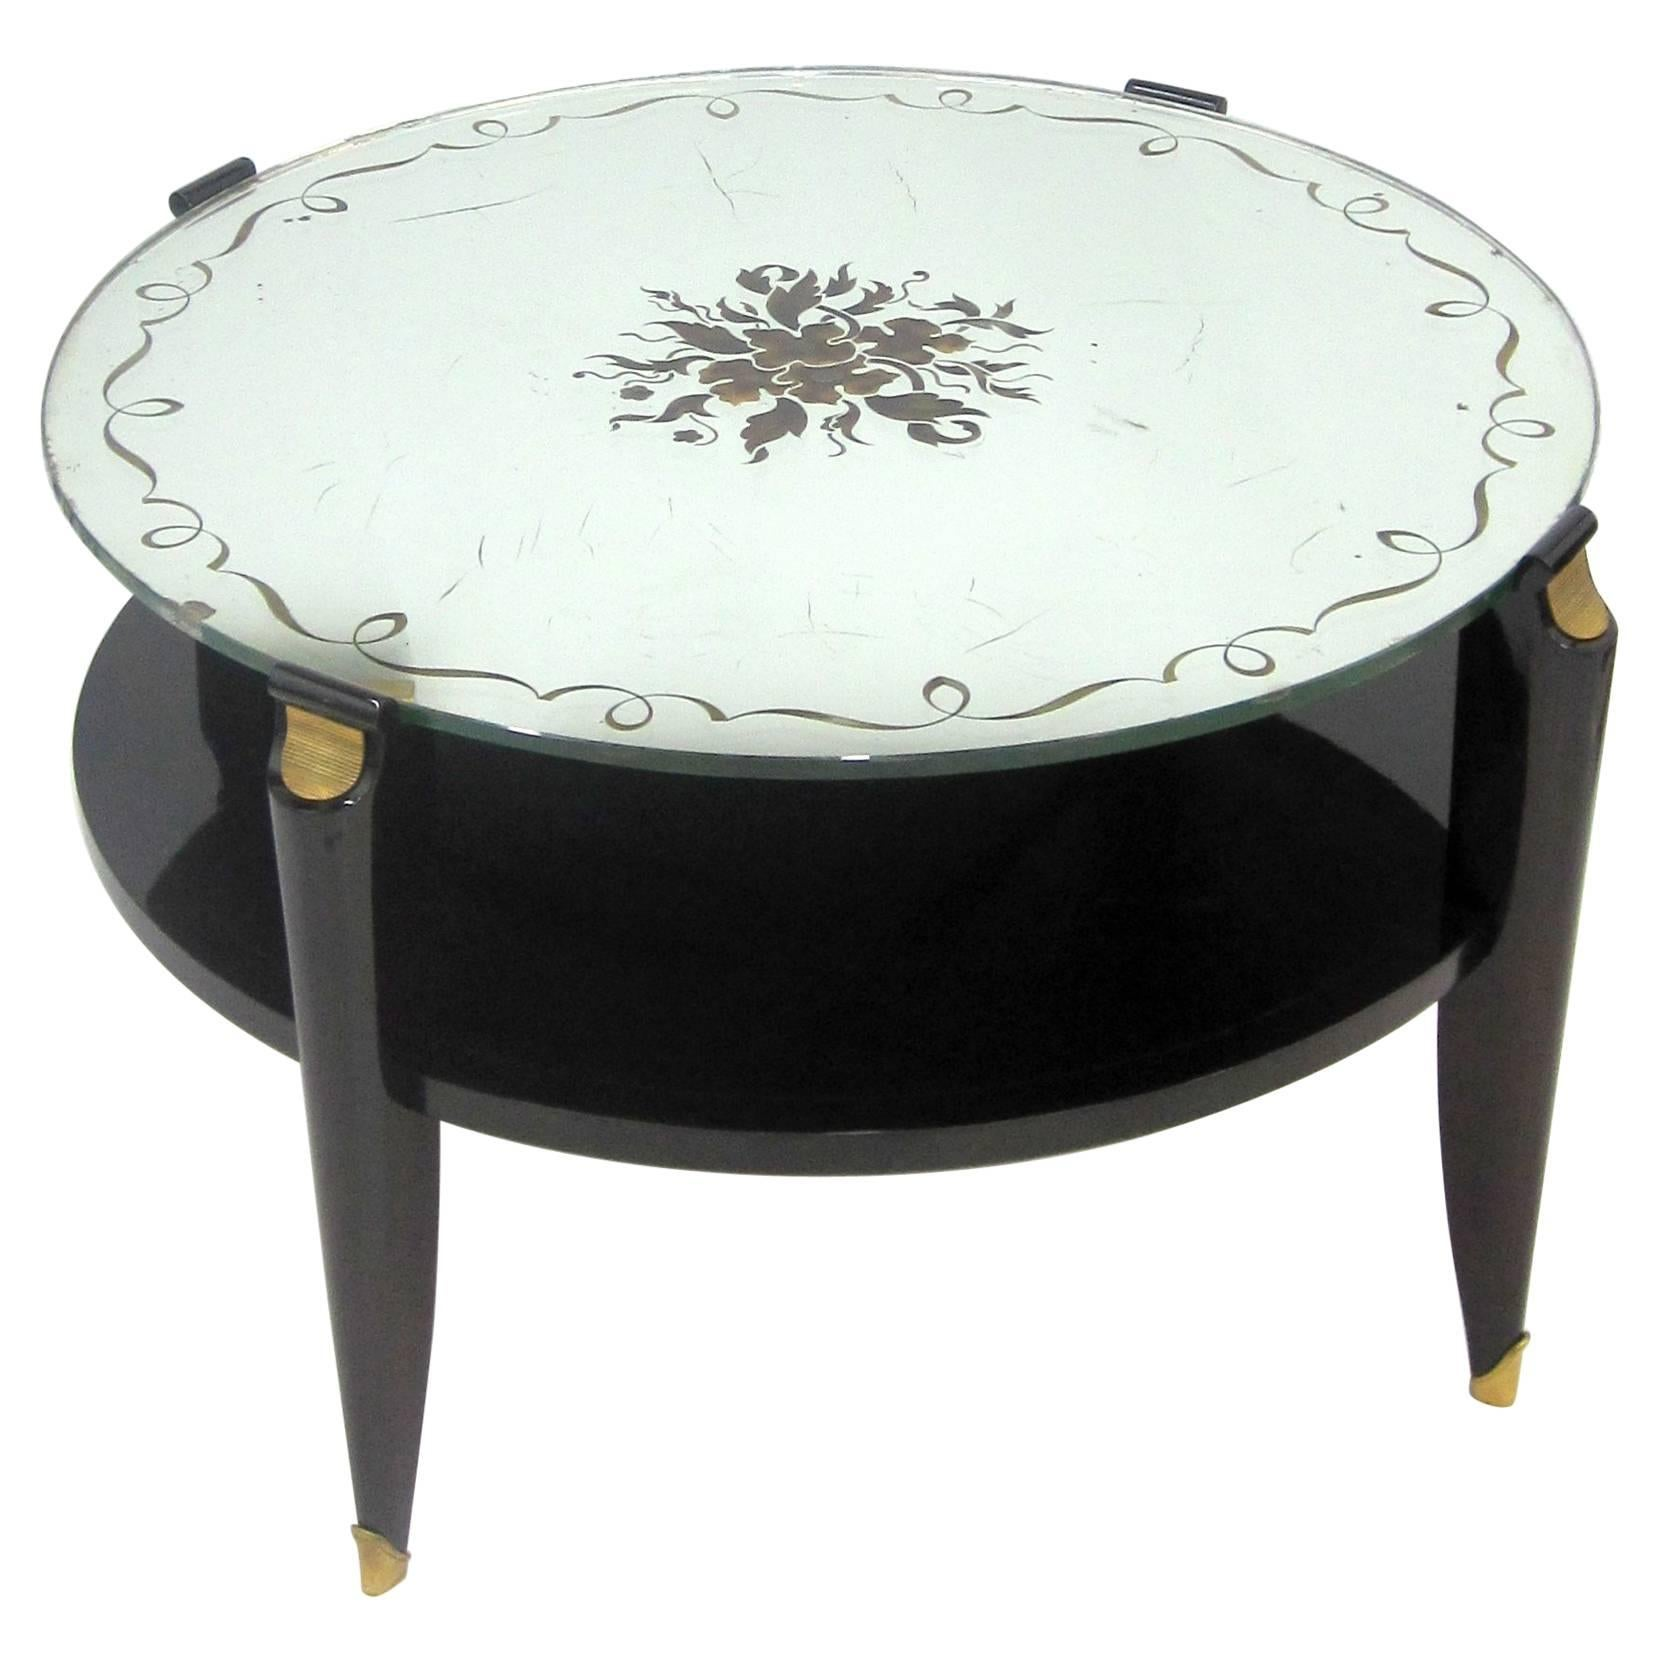 French Art Deco Coffee Table in Exotic Wood with Églomisé Mirror Top